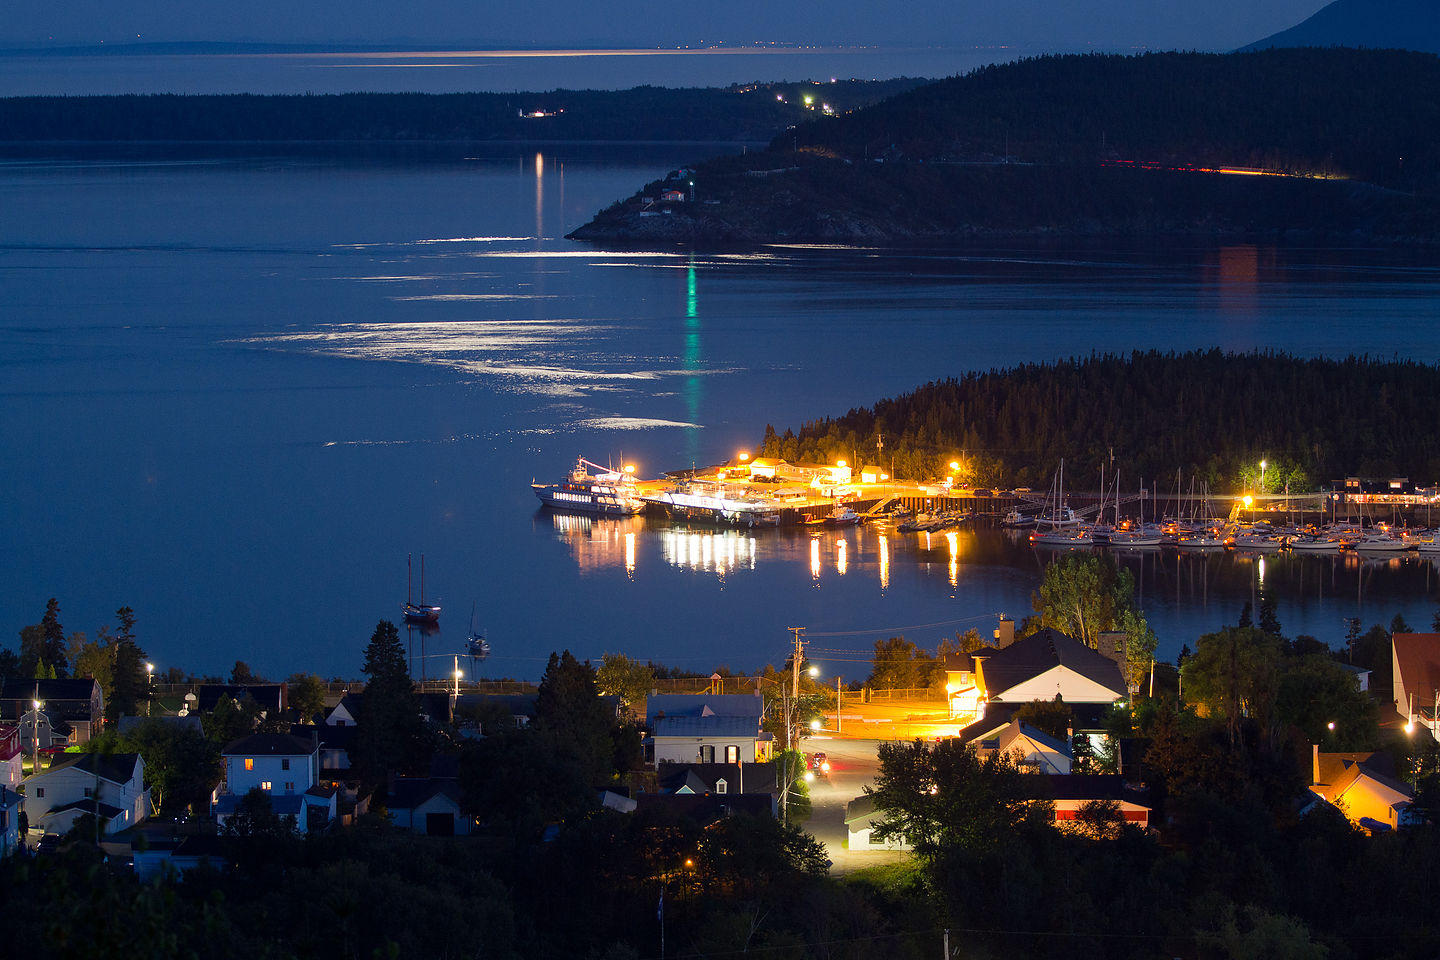 Night View of Tadoussac Village from Campground - TJG